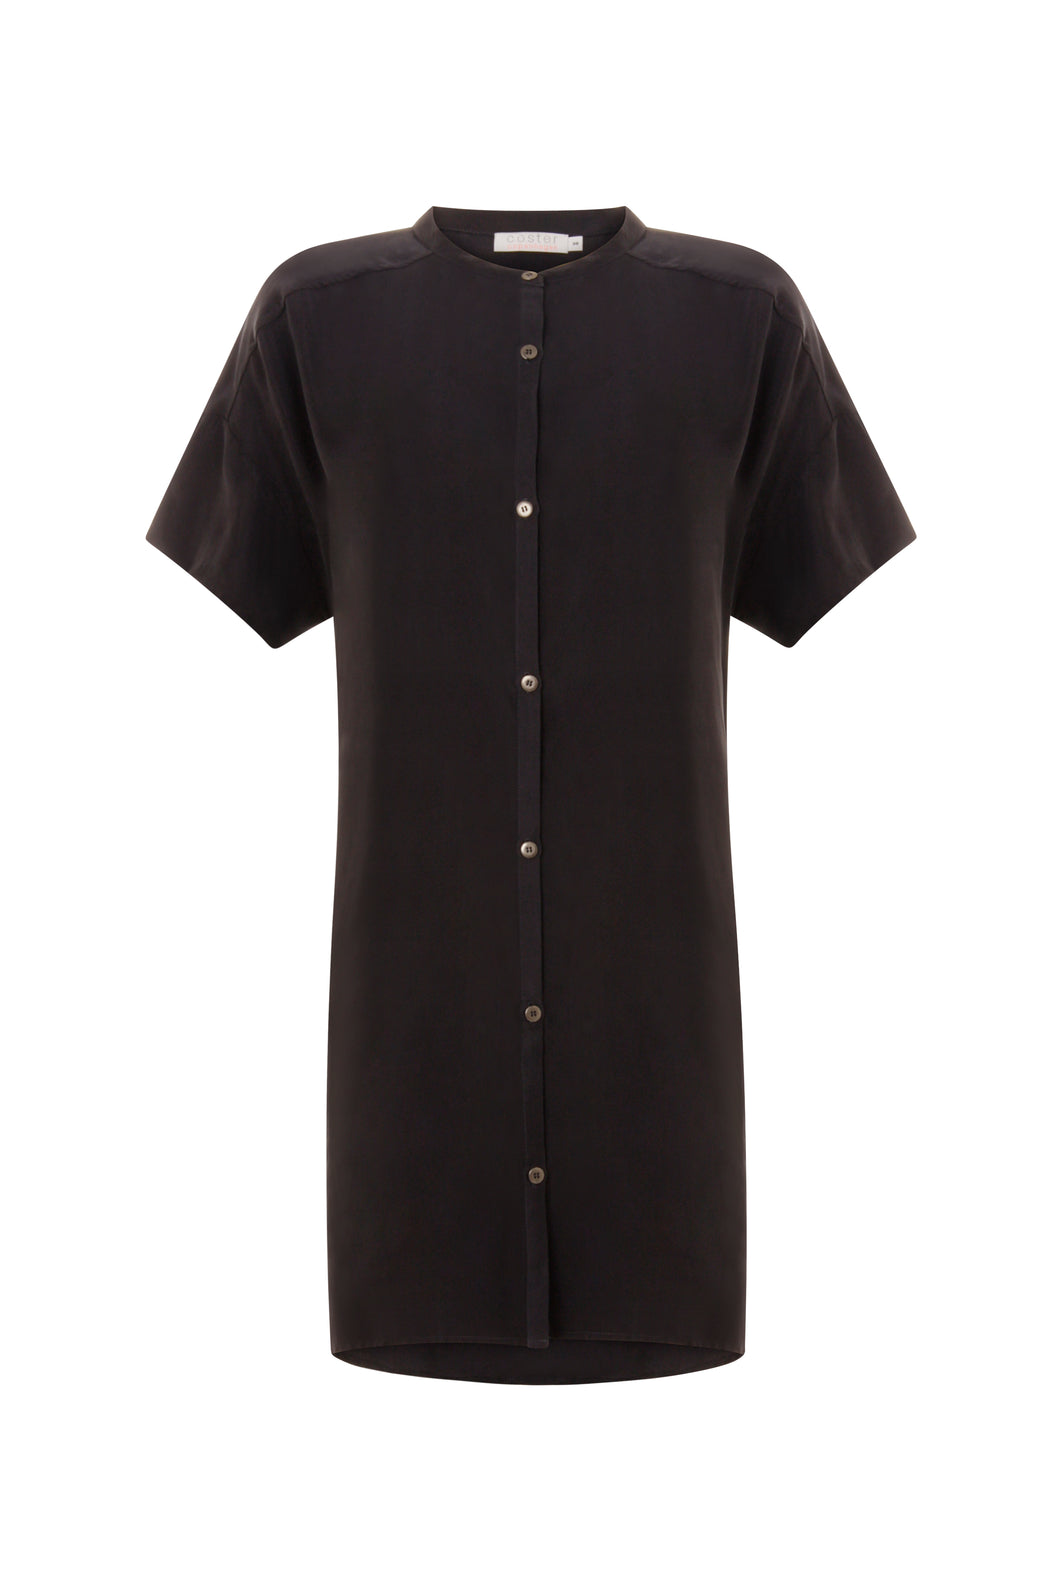 COSTER Oversized Shirt with Short Sleeves